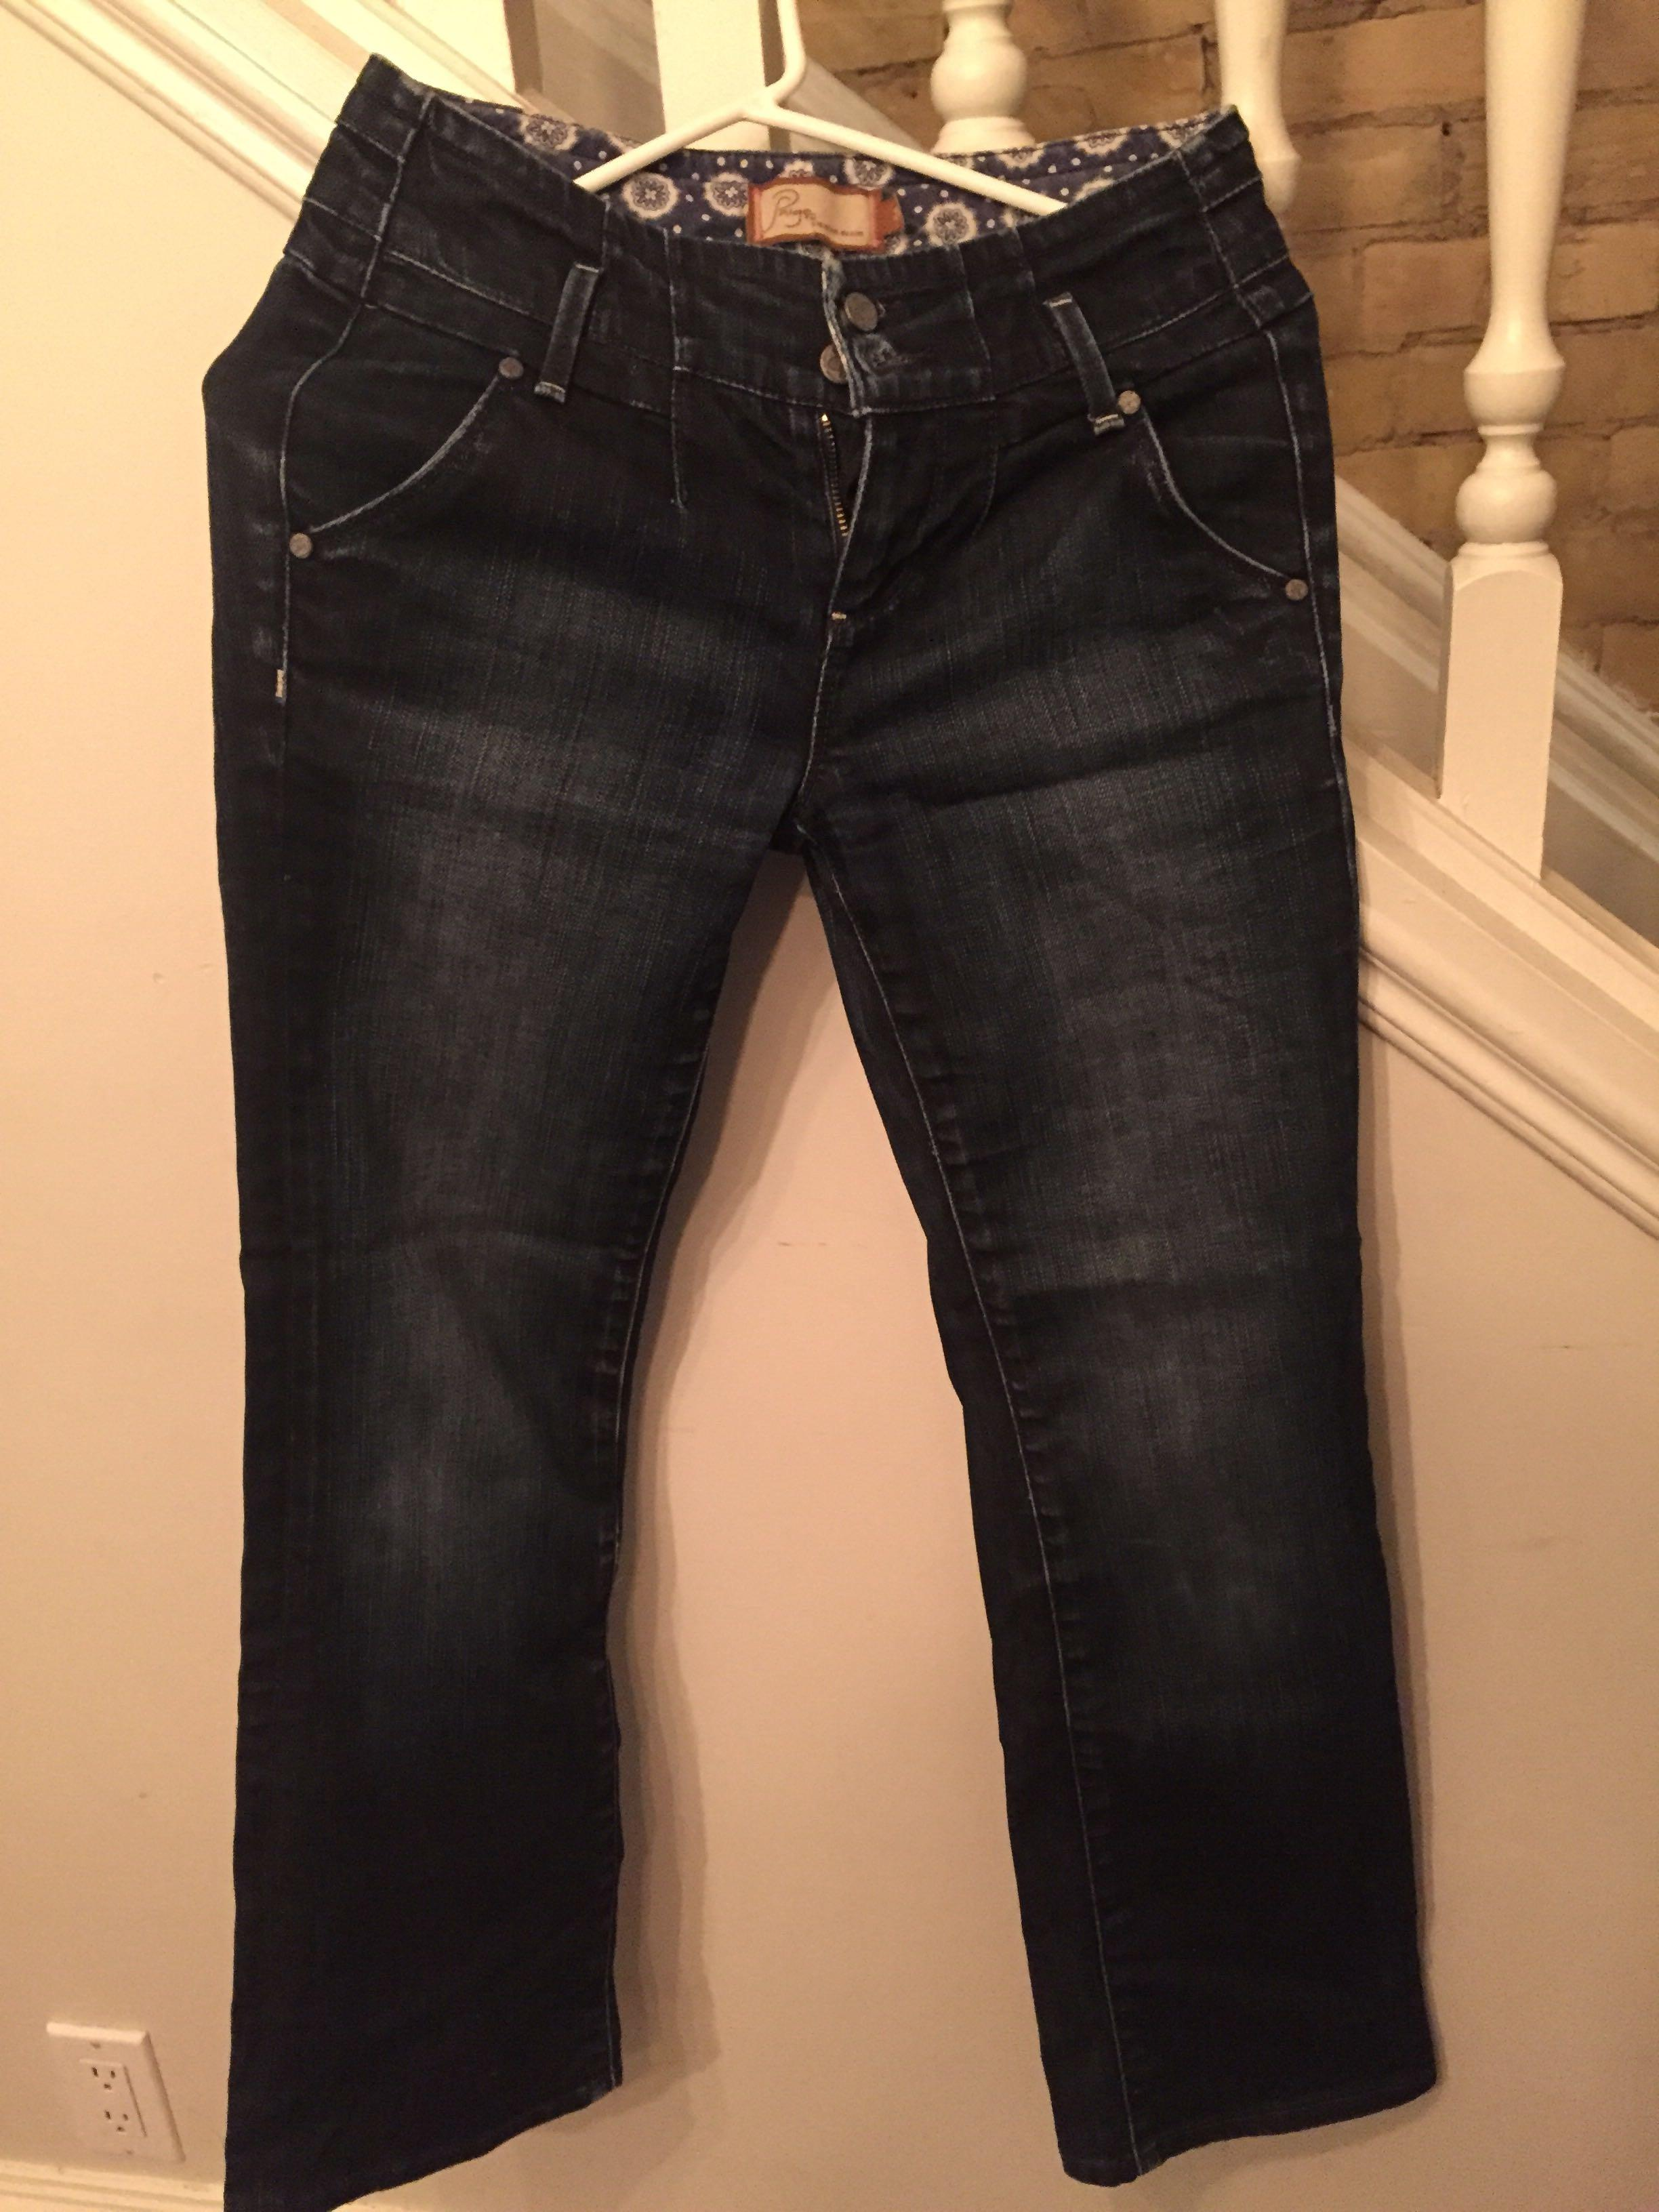 Paige premium denim bootcut jeans size 25 worth over 250$!